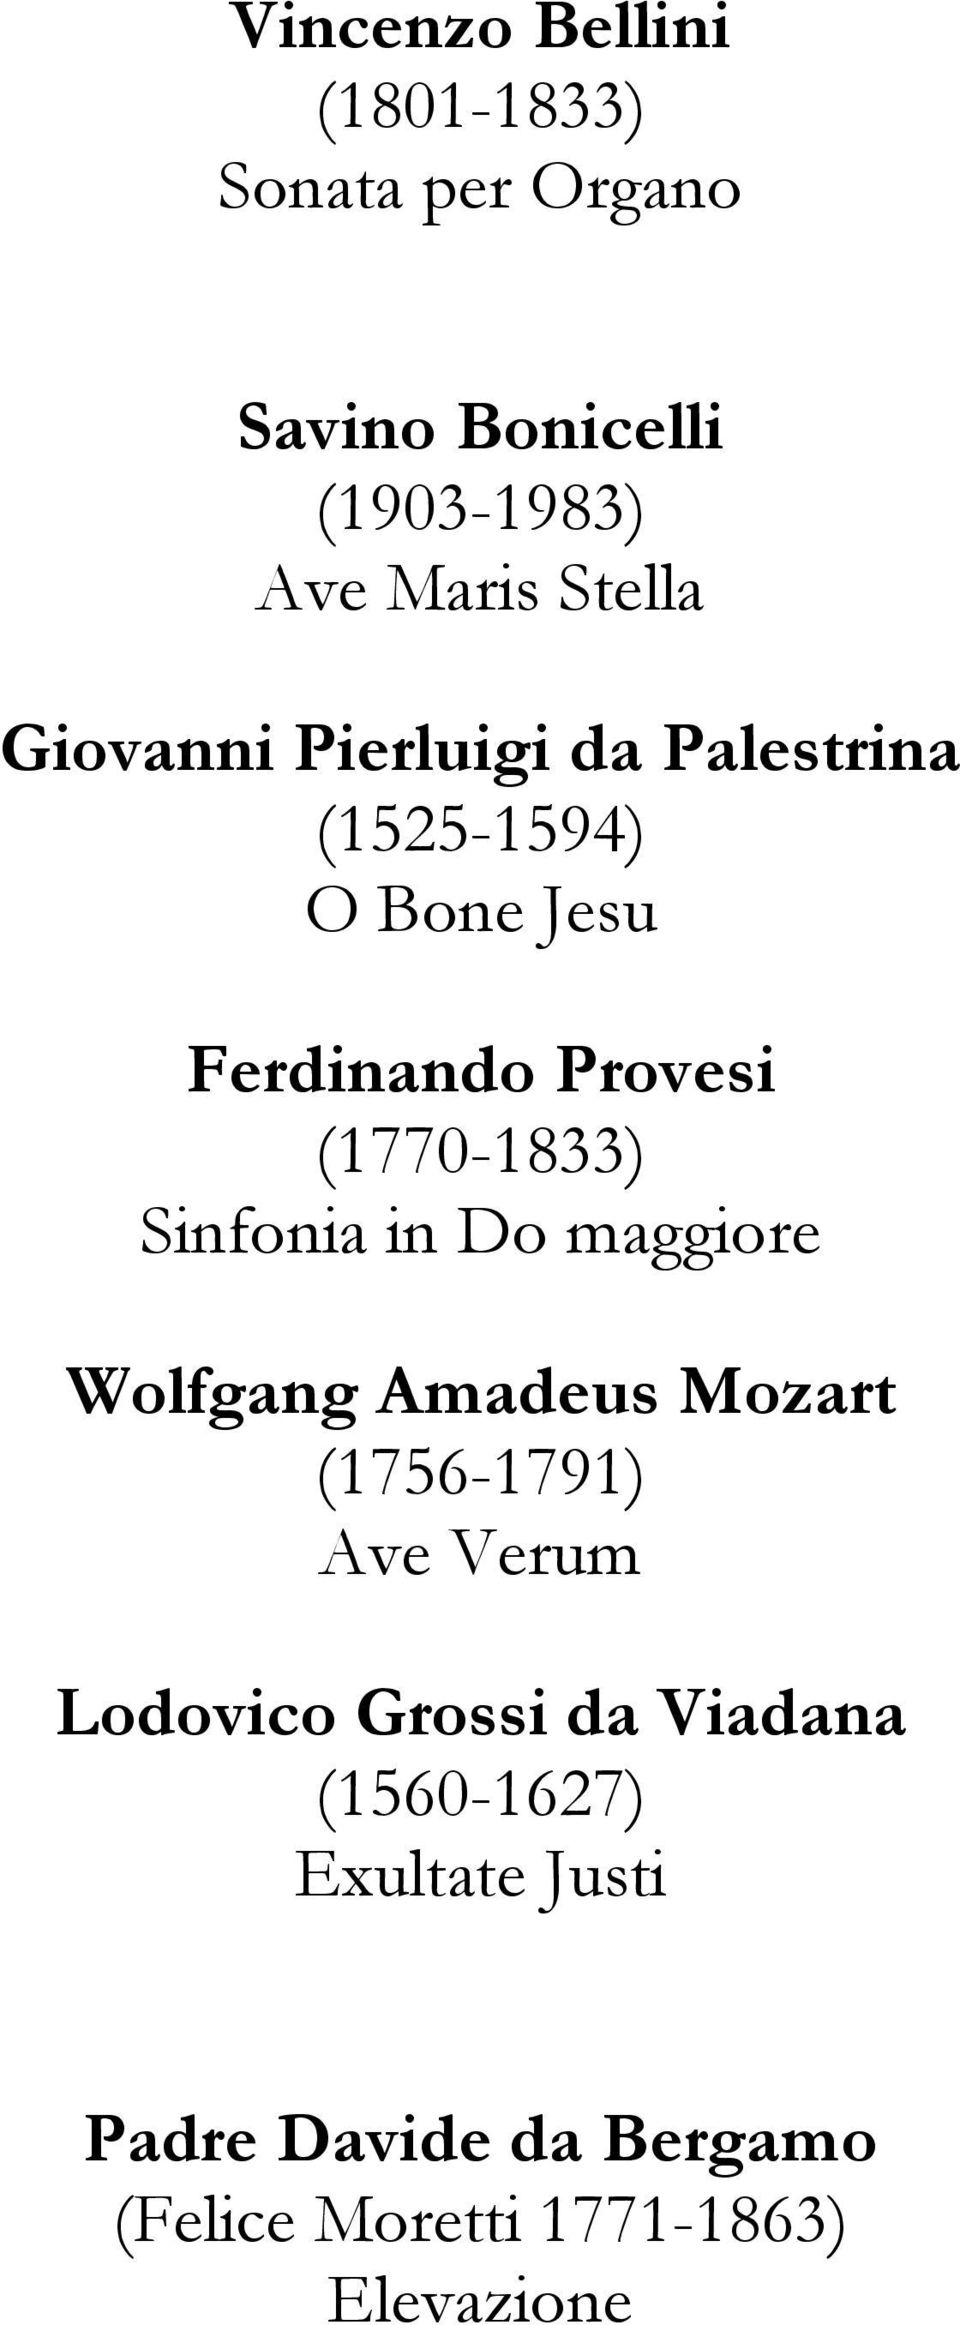 (1770-1833) Sinfonia in Do maggiore Wolfgang Amadeus Mozart (1756-1791) Ave Verum Lodovico